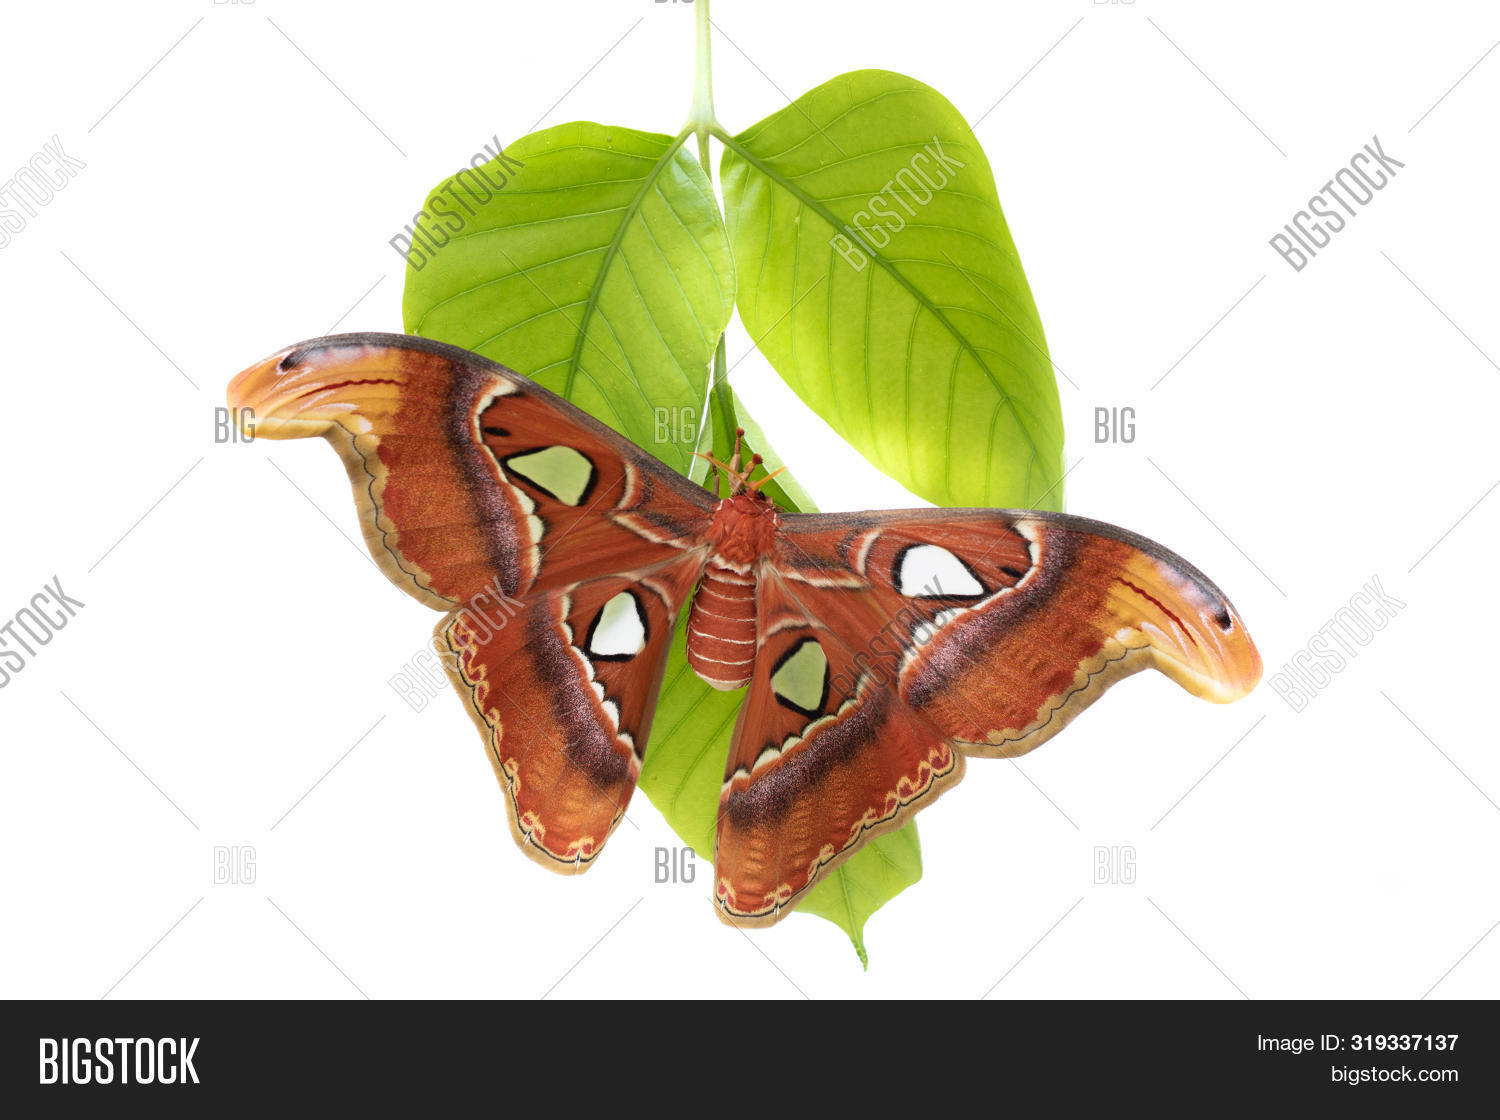 animal,antenna,asia,atlas,attacus,beautiful,beauty,big,biggest,bright,brown,bug,butterfly,clipping,closeup,cocoon,colorful,creature,dangle,delicate,delicated,design,entomology,environment,exotic,fragile,giant,green,habitat,hang,insect,large,lepidoptera,macro,moth,natural,nature,nocturnal,pacious